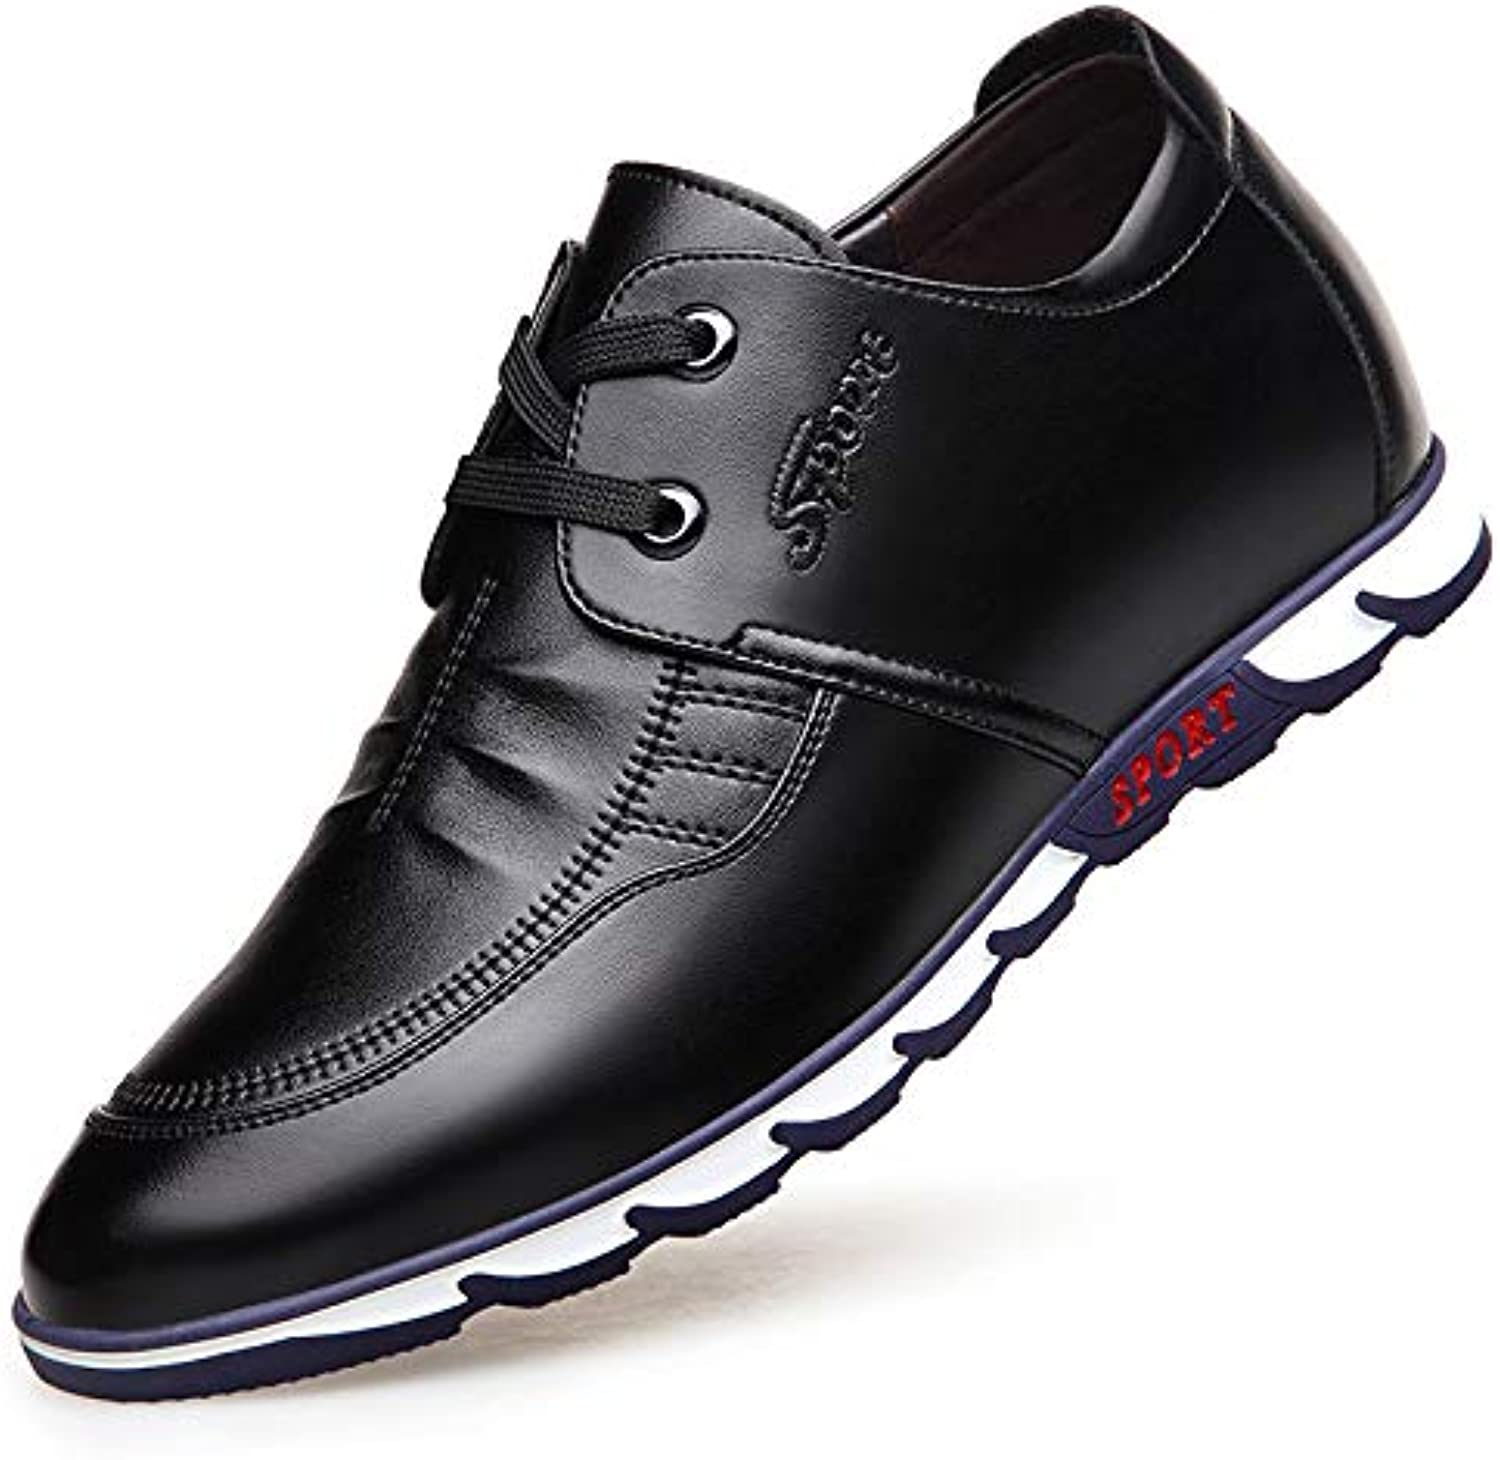 LOVDRAM Men'S Leather shoes Increased Casual shoes With Men'S Leather shoes Spring Men'S shoes